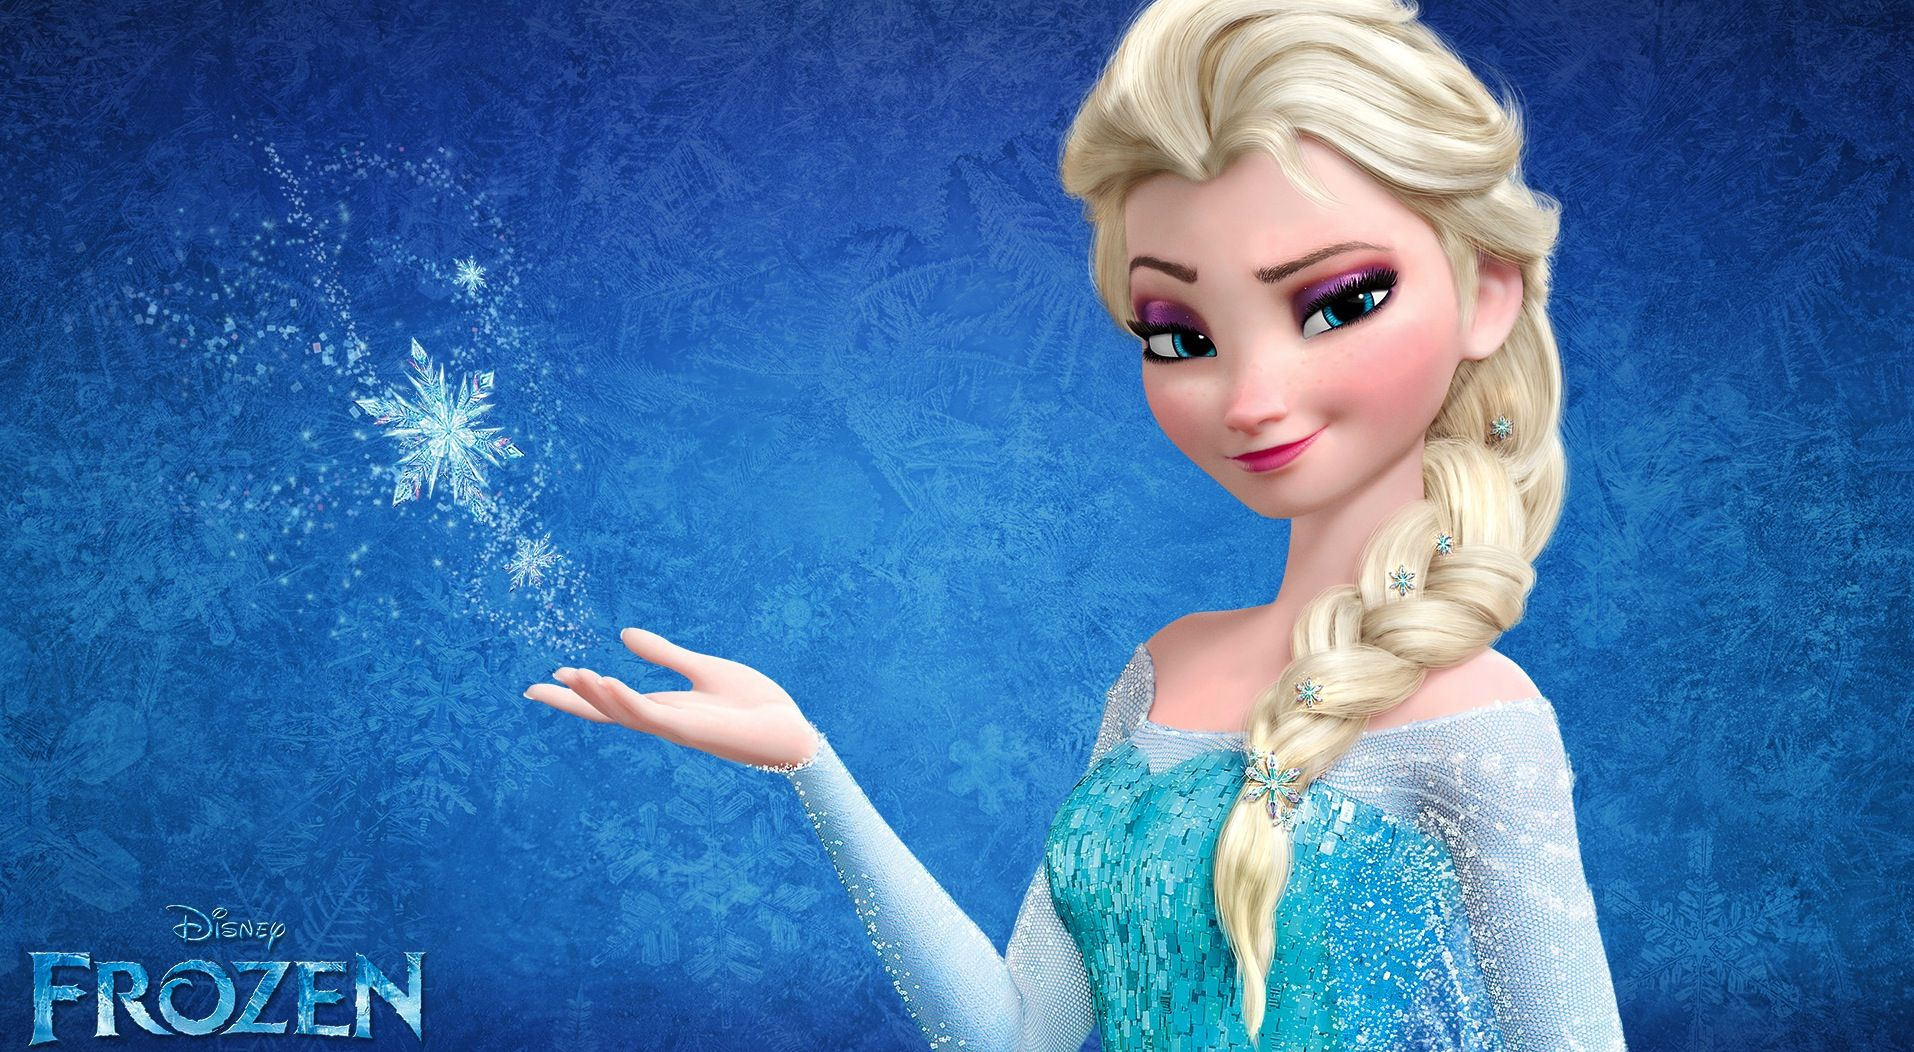 Box Office: Frozen Freezes Out Competition